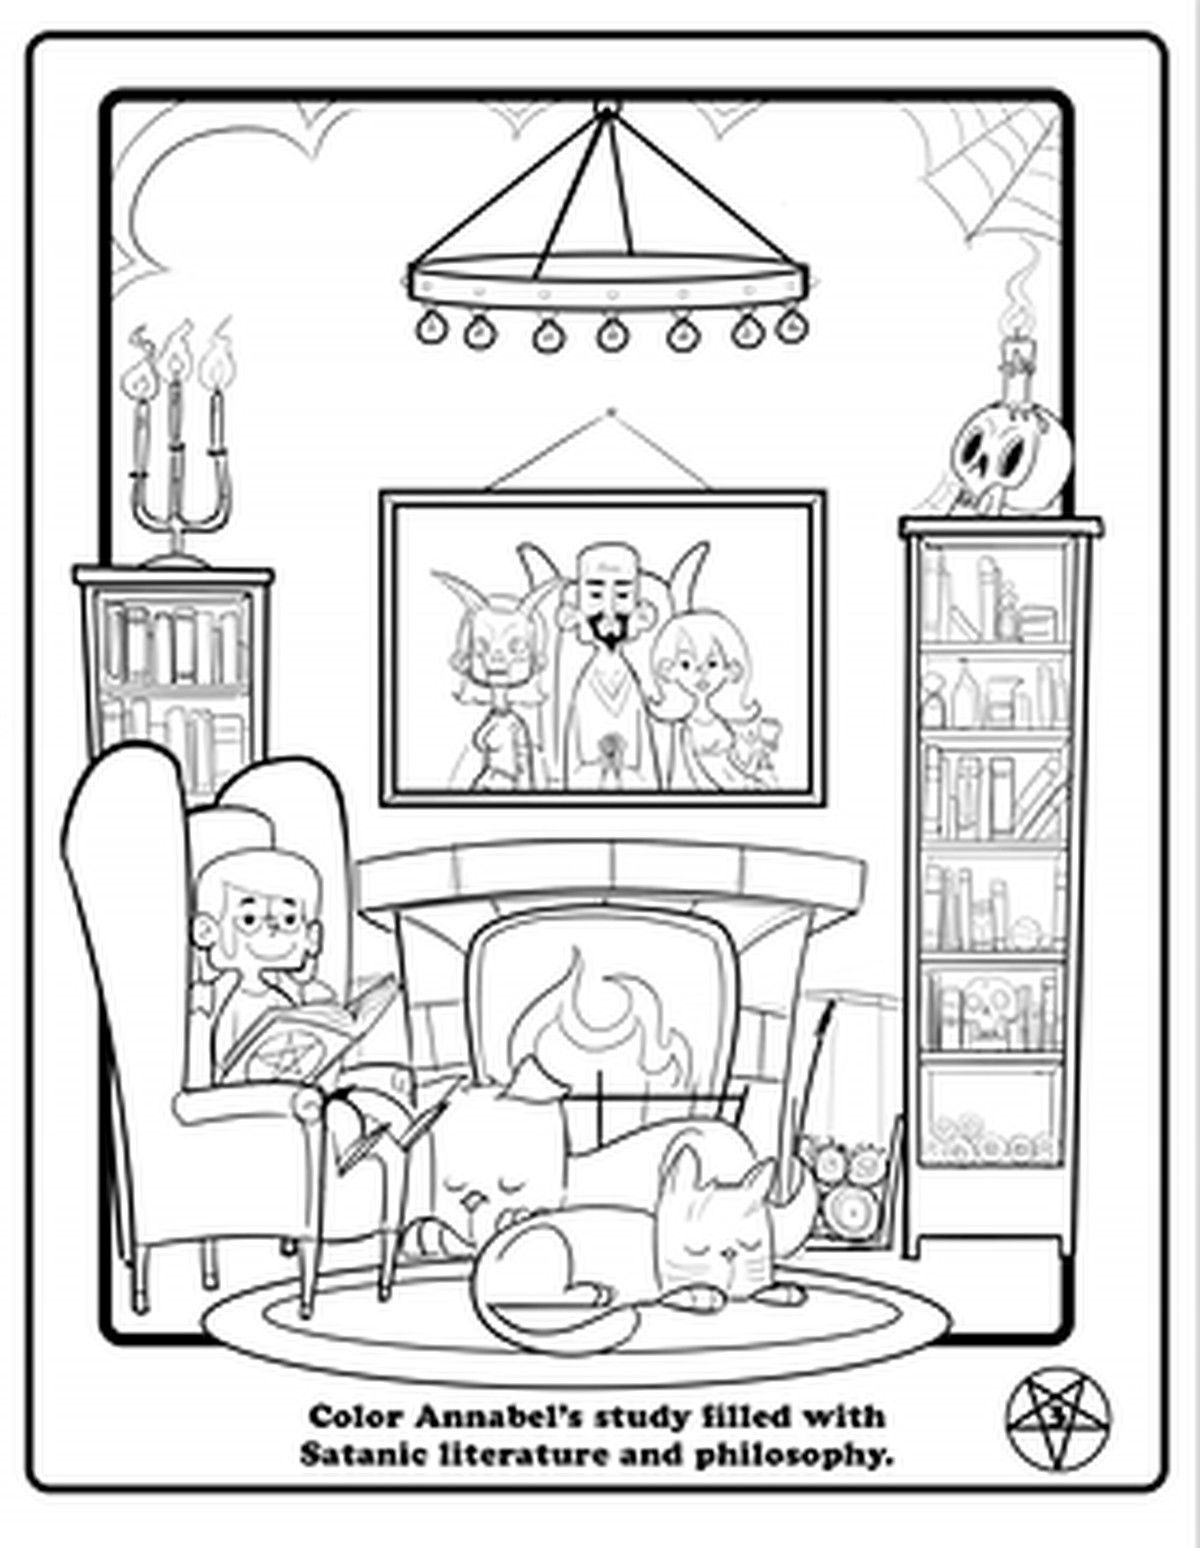 This is what a Satanist coloring book looks like - Vox